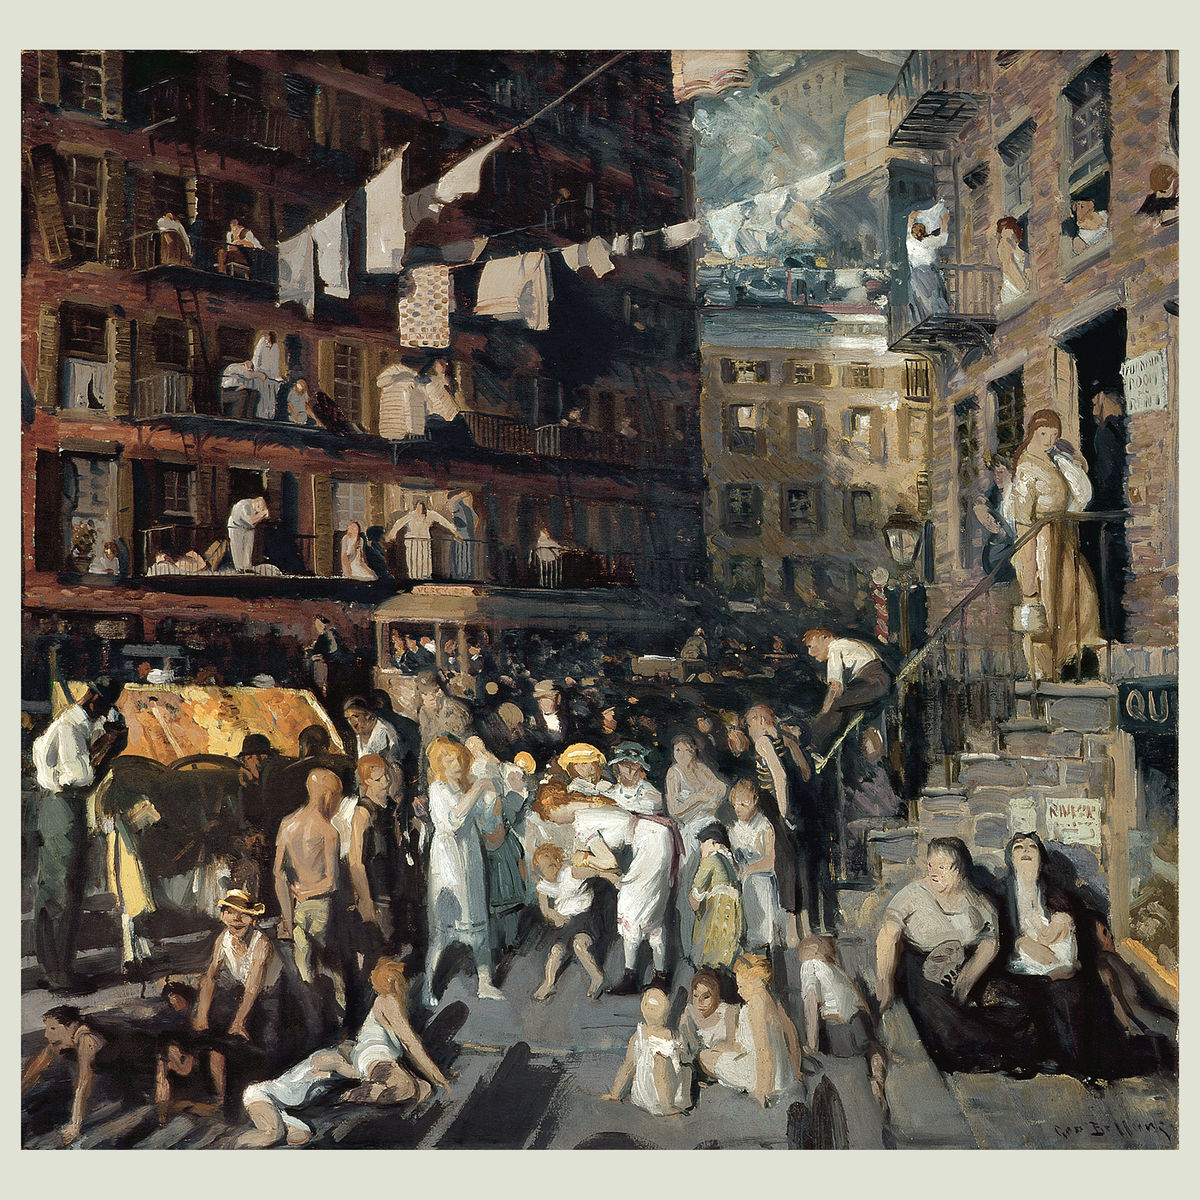 The Cliff Dwellers by George Bellows - 1913